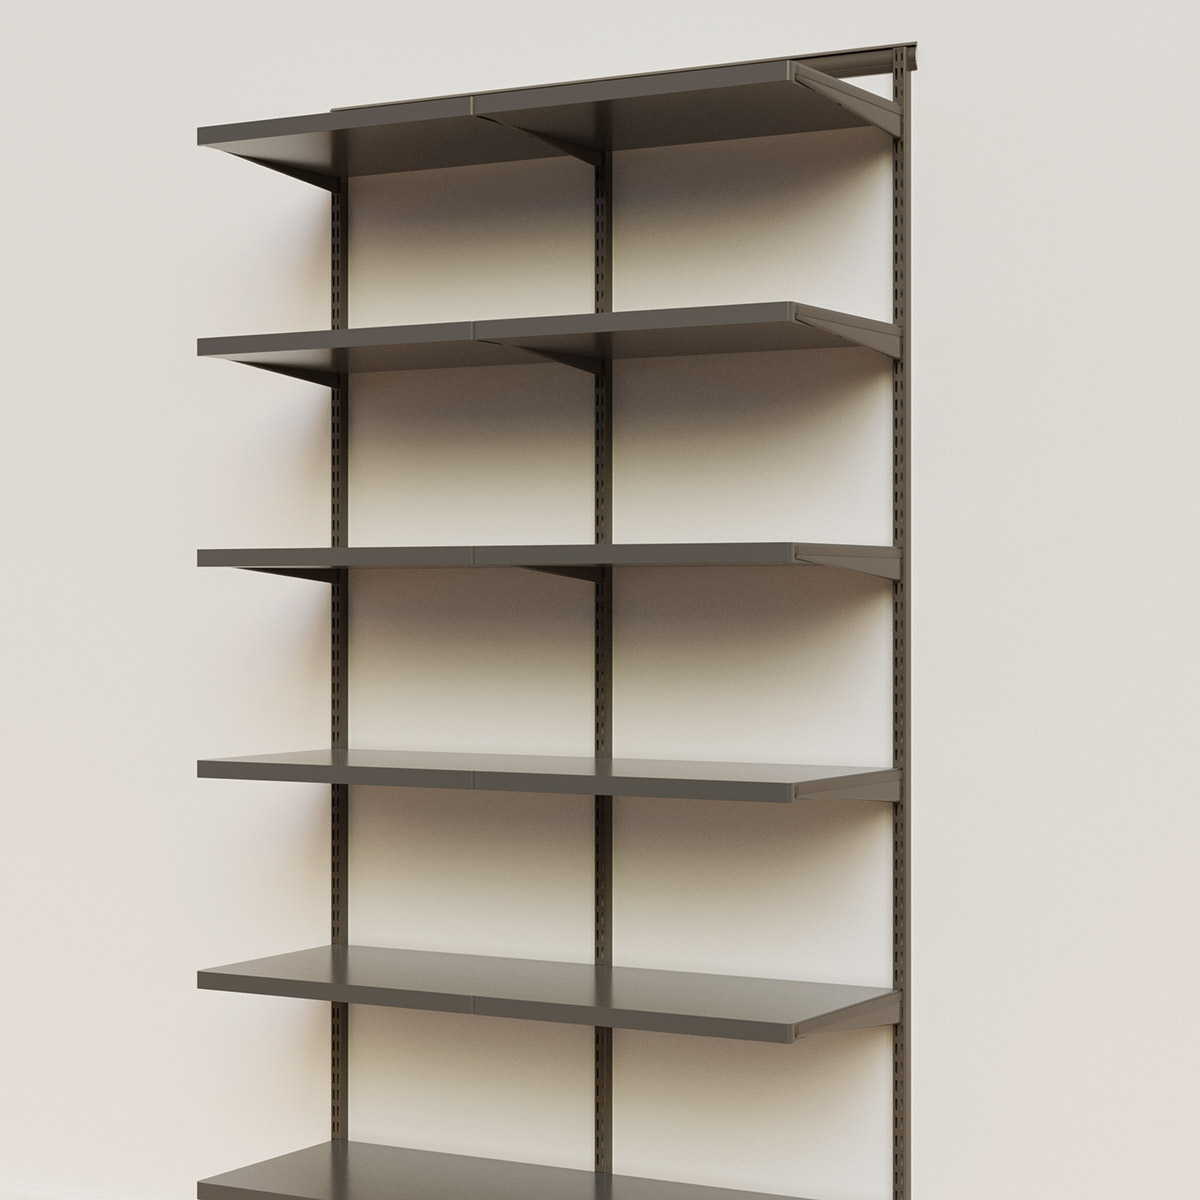 Elfa Décor 4' Graphite & Grey Basic Shelving Units for Anywhere